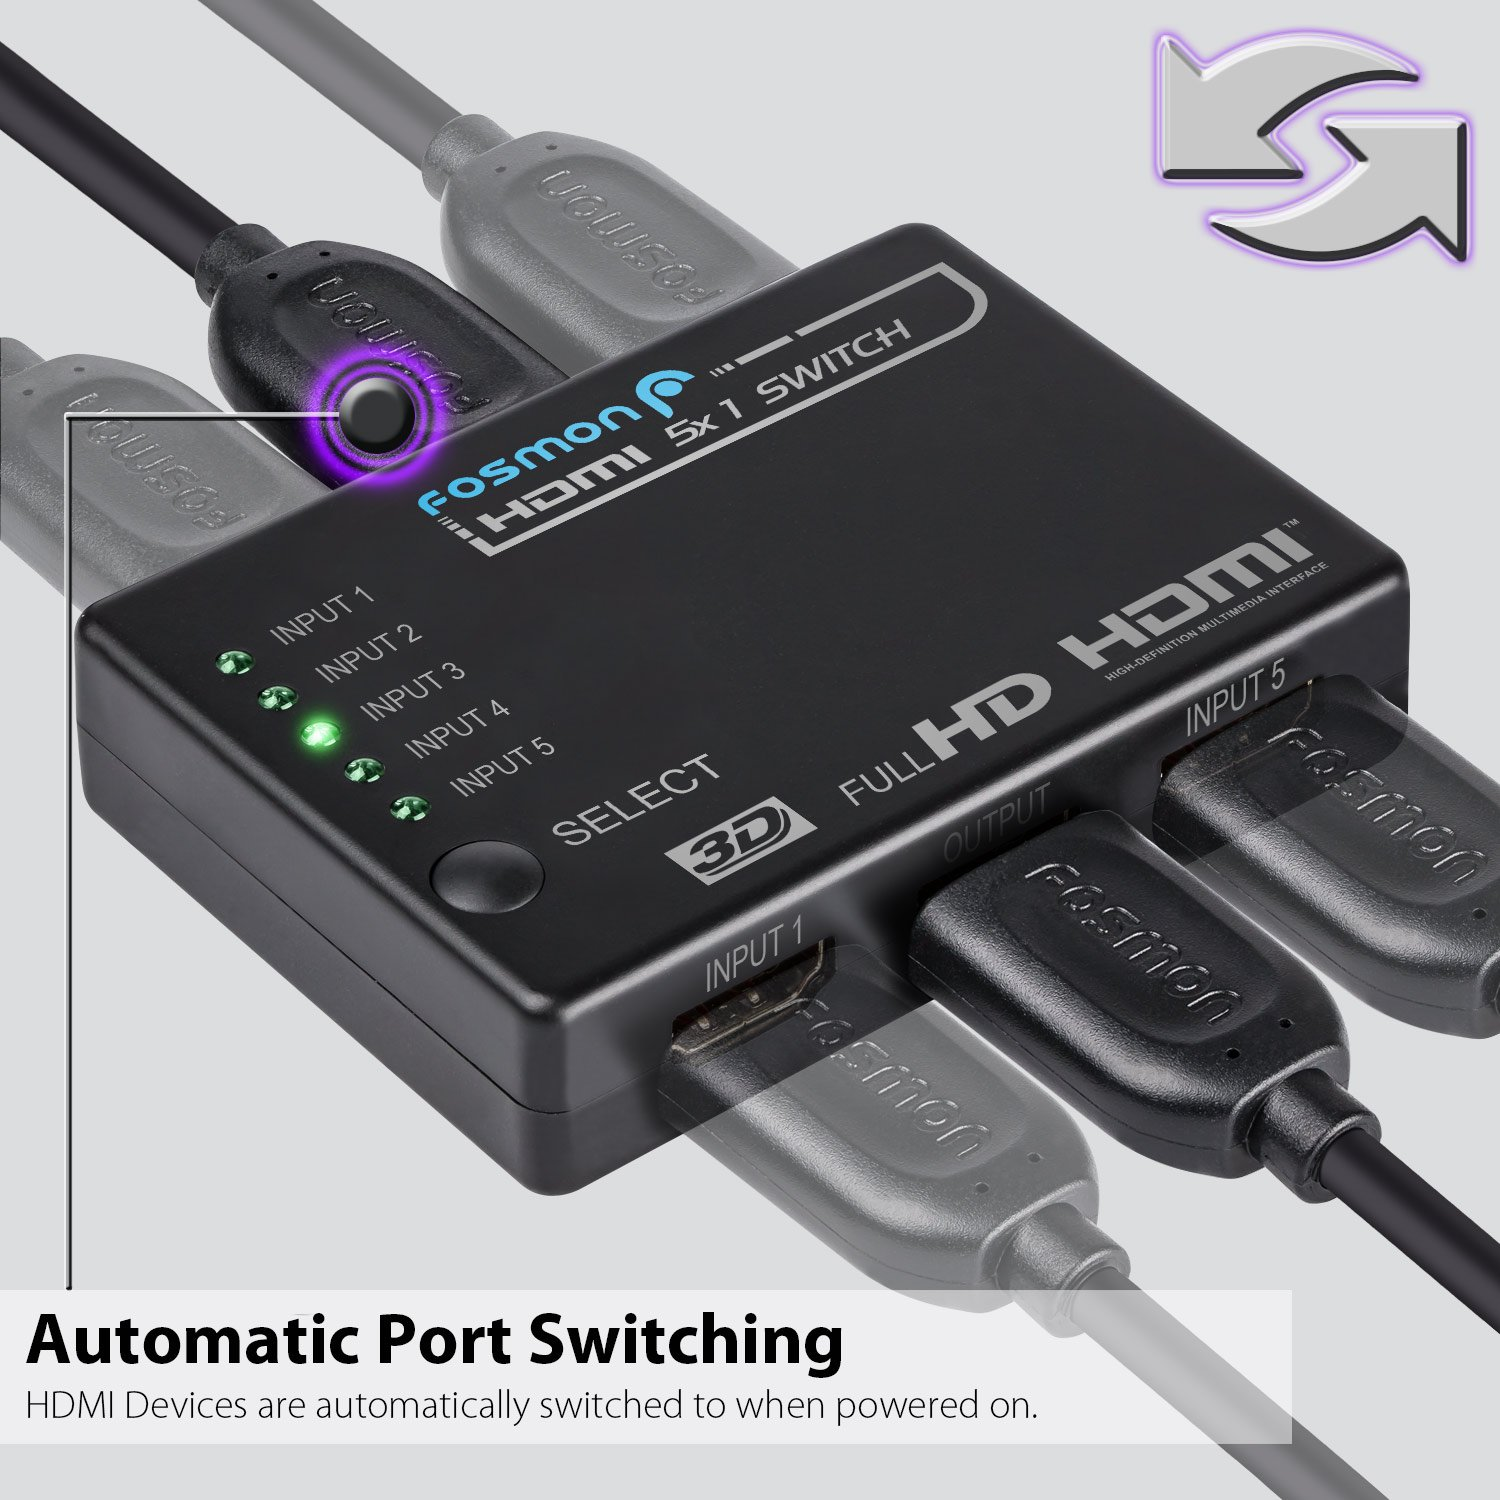 Fosmon HD1832 Intelligent 5x1 5-Port HDMI Switch/Switcher with IR Remote  and 1 5 Meter USB Power Cable (Supports 3D)